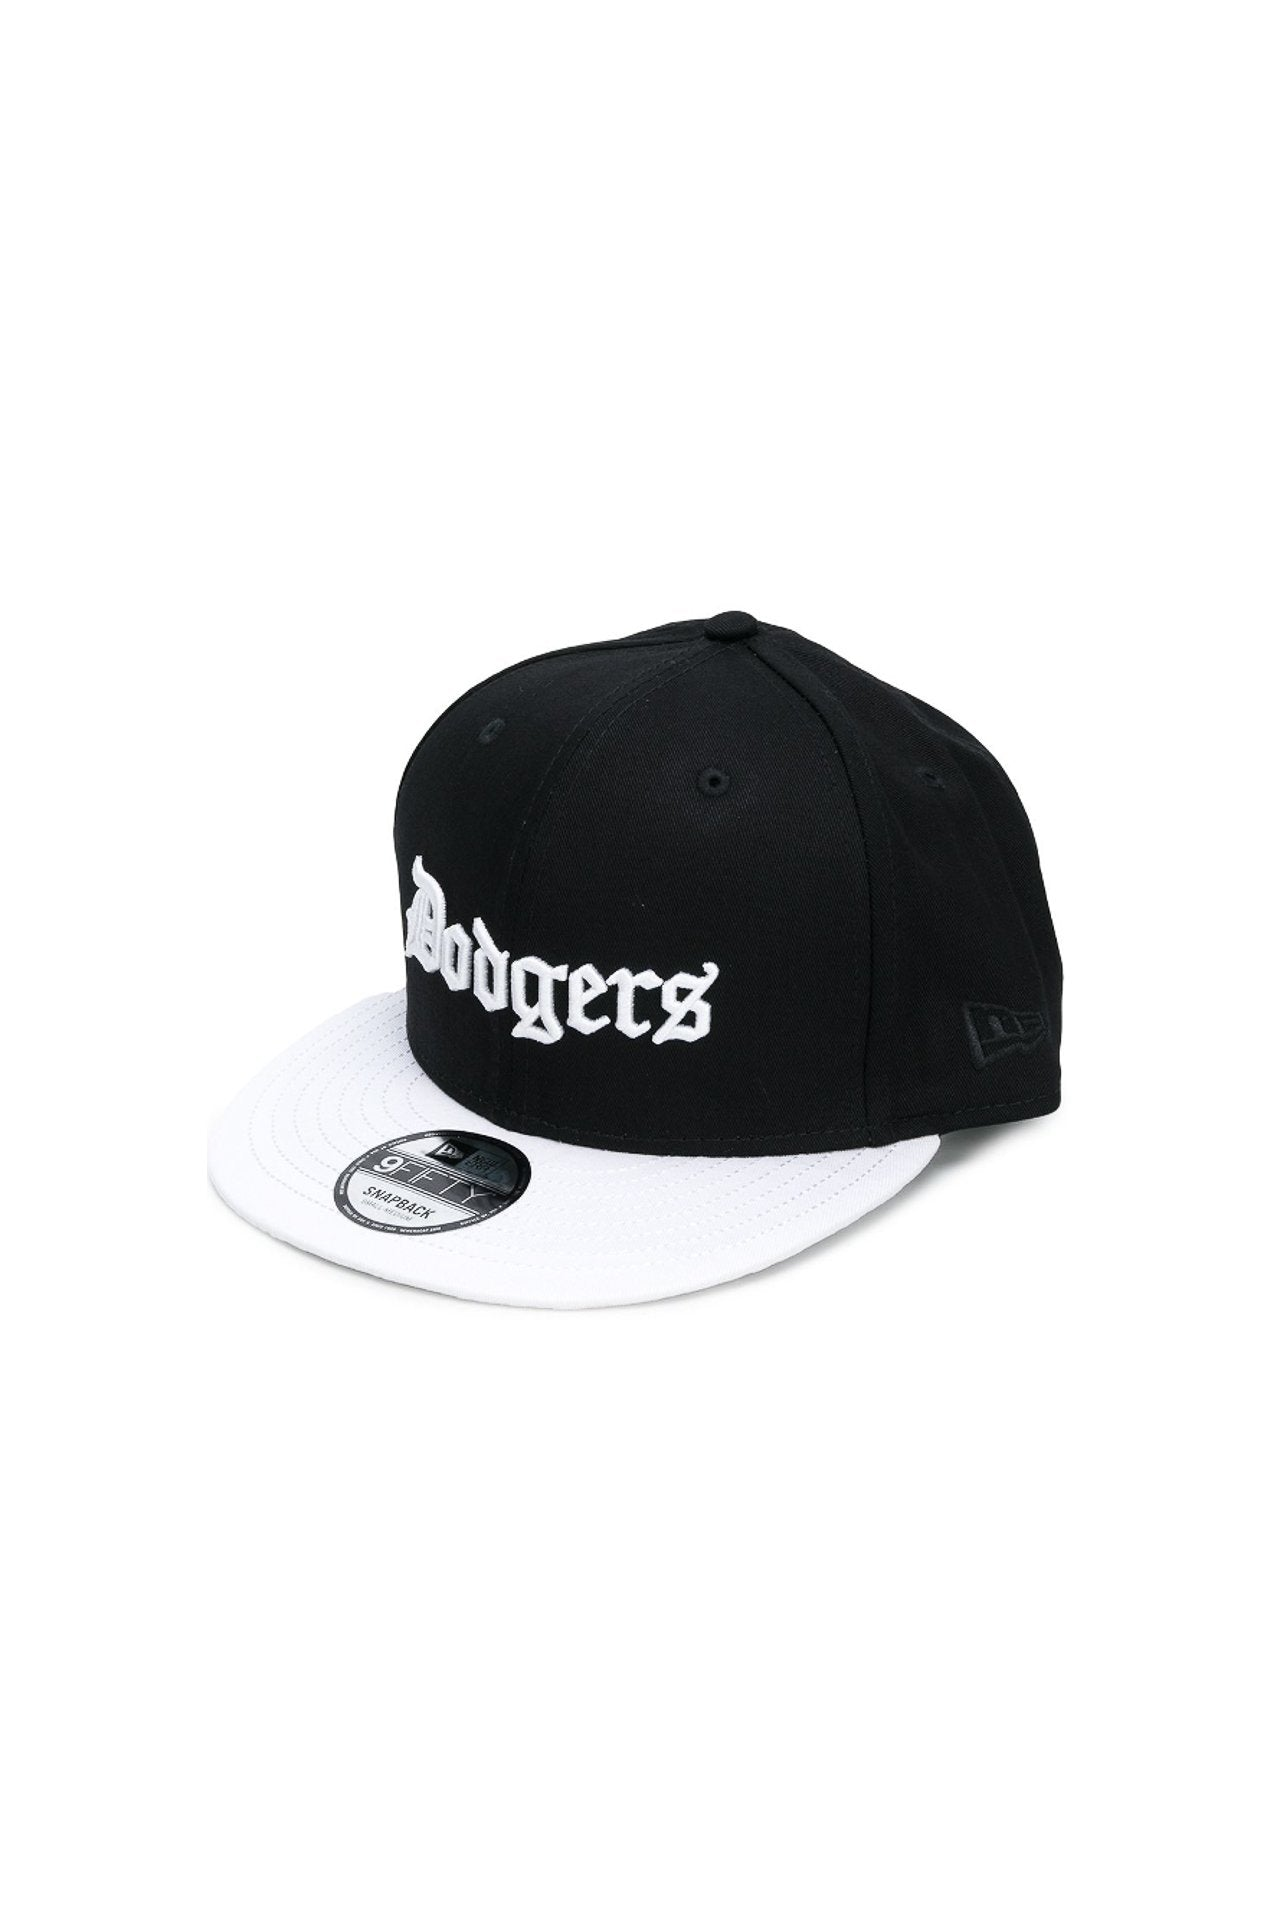 Marcelo Burlon Dodgers Cap Black